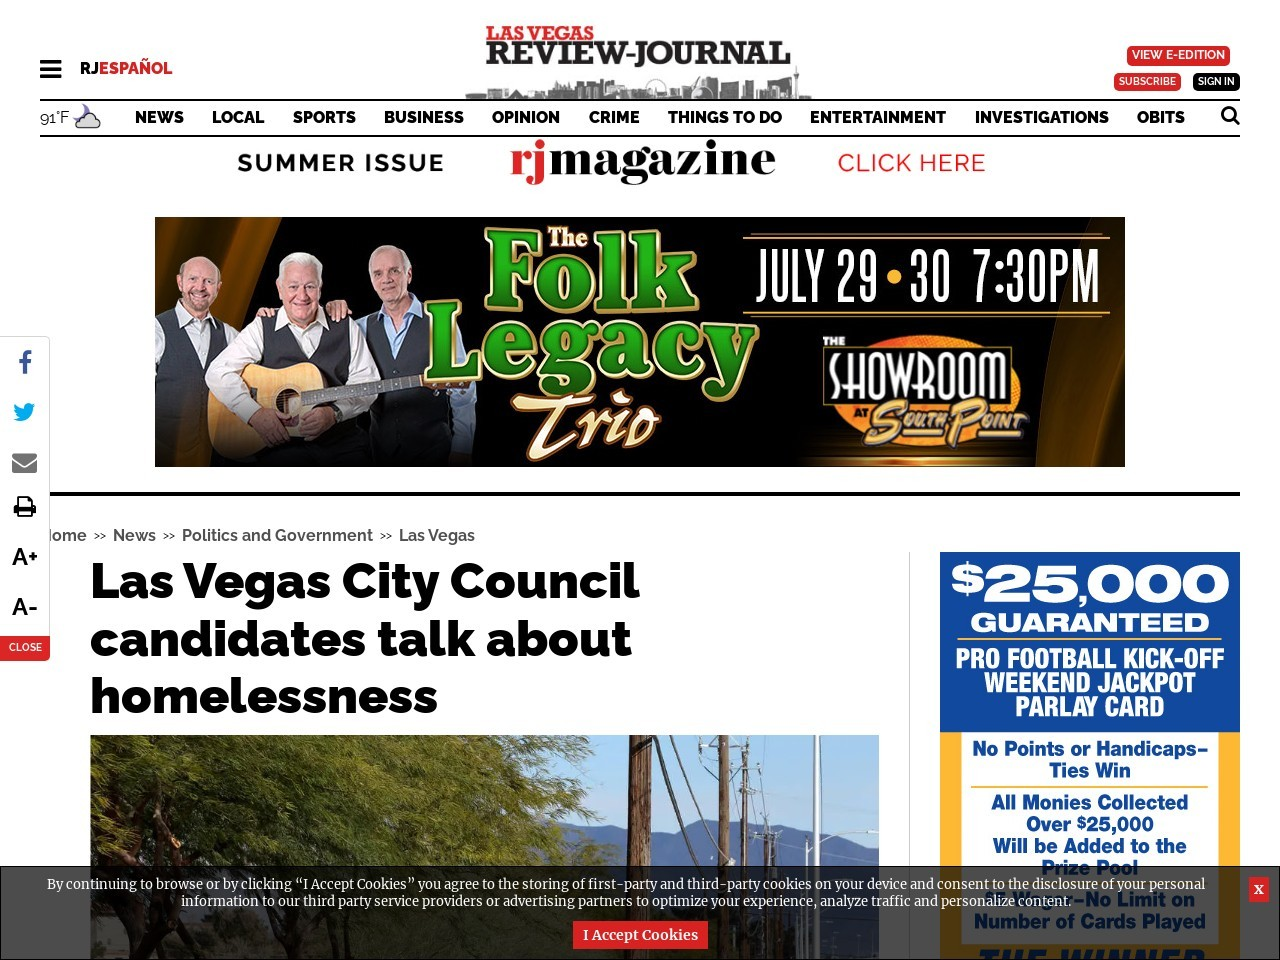 Las Vegas City Council candidates weigh in on homelessness